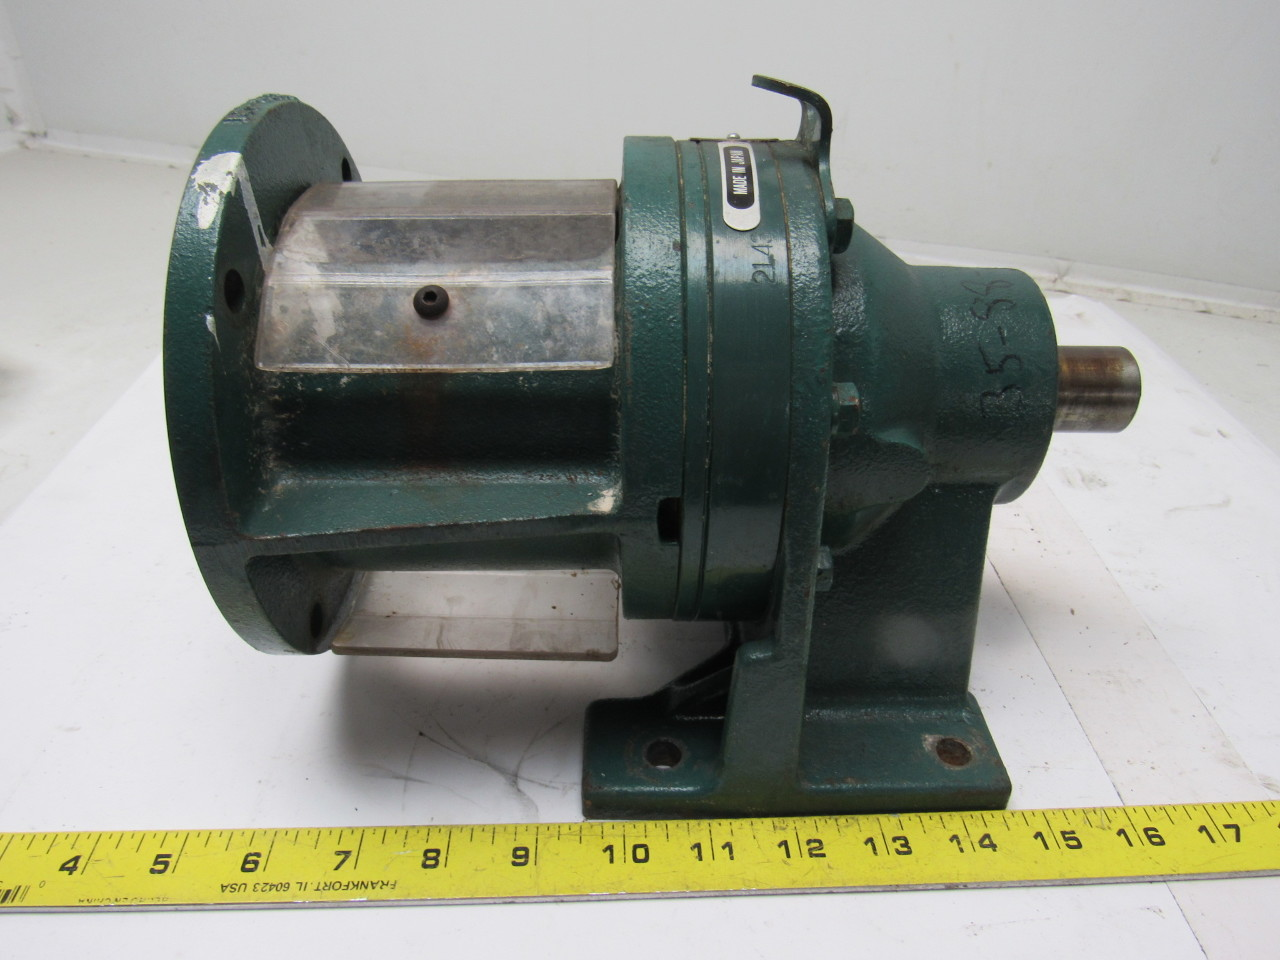 Sumitomo SM-Cyclo HC3095 Inline Gear Reducer 43:1 Ratio 0.60 Hp 1750RPM